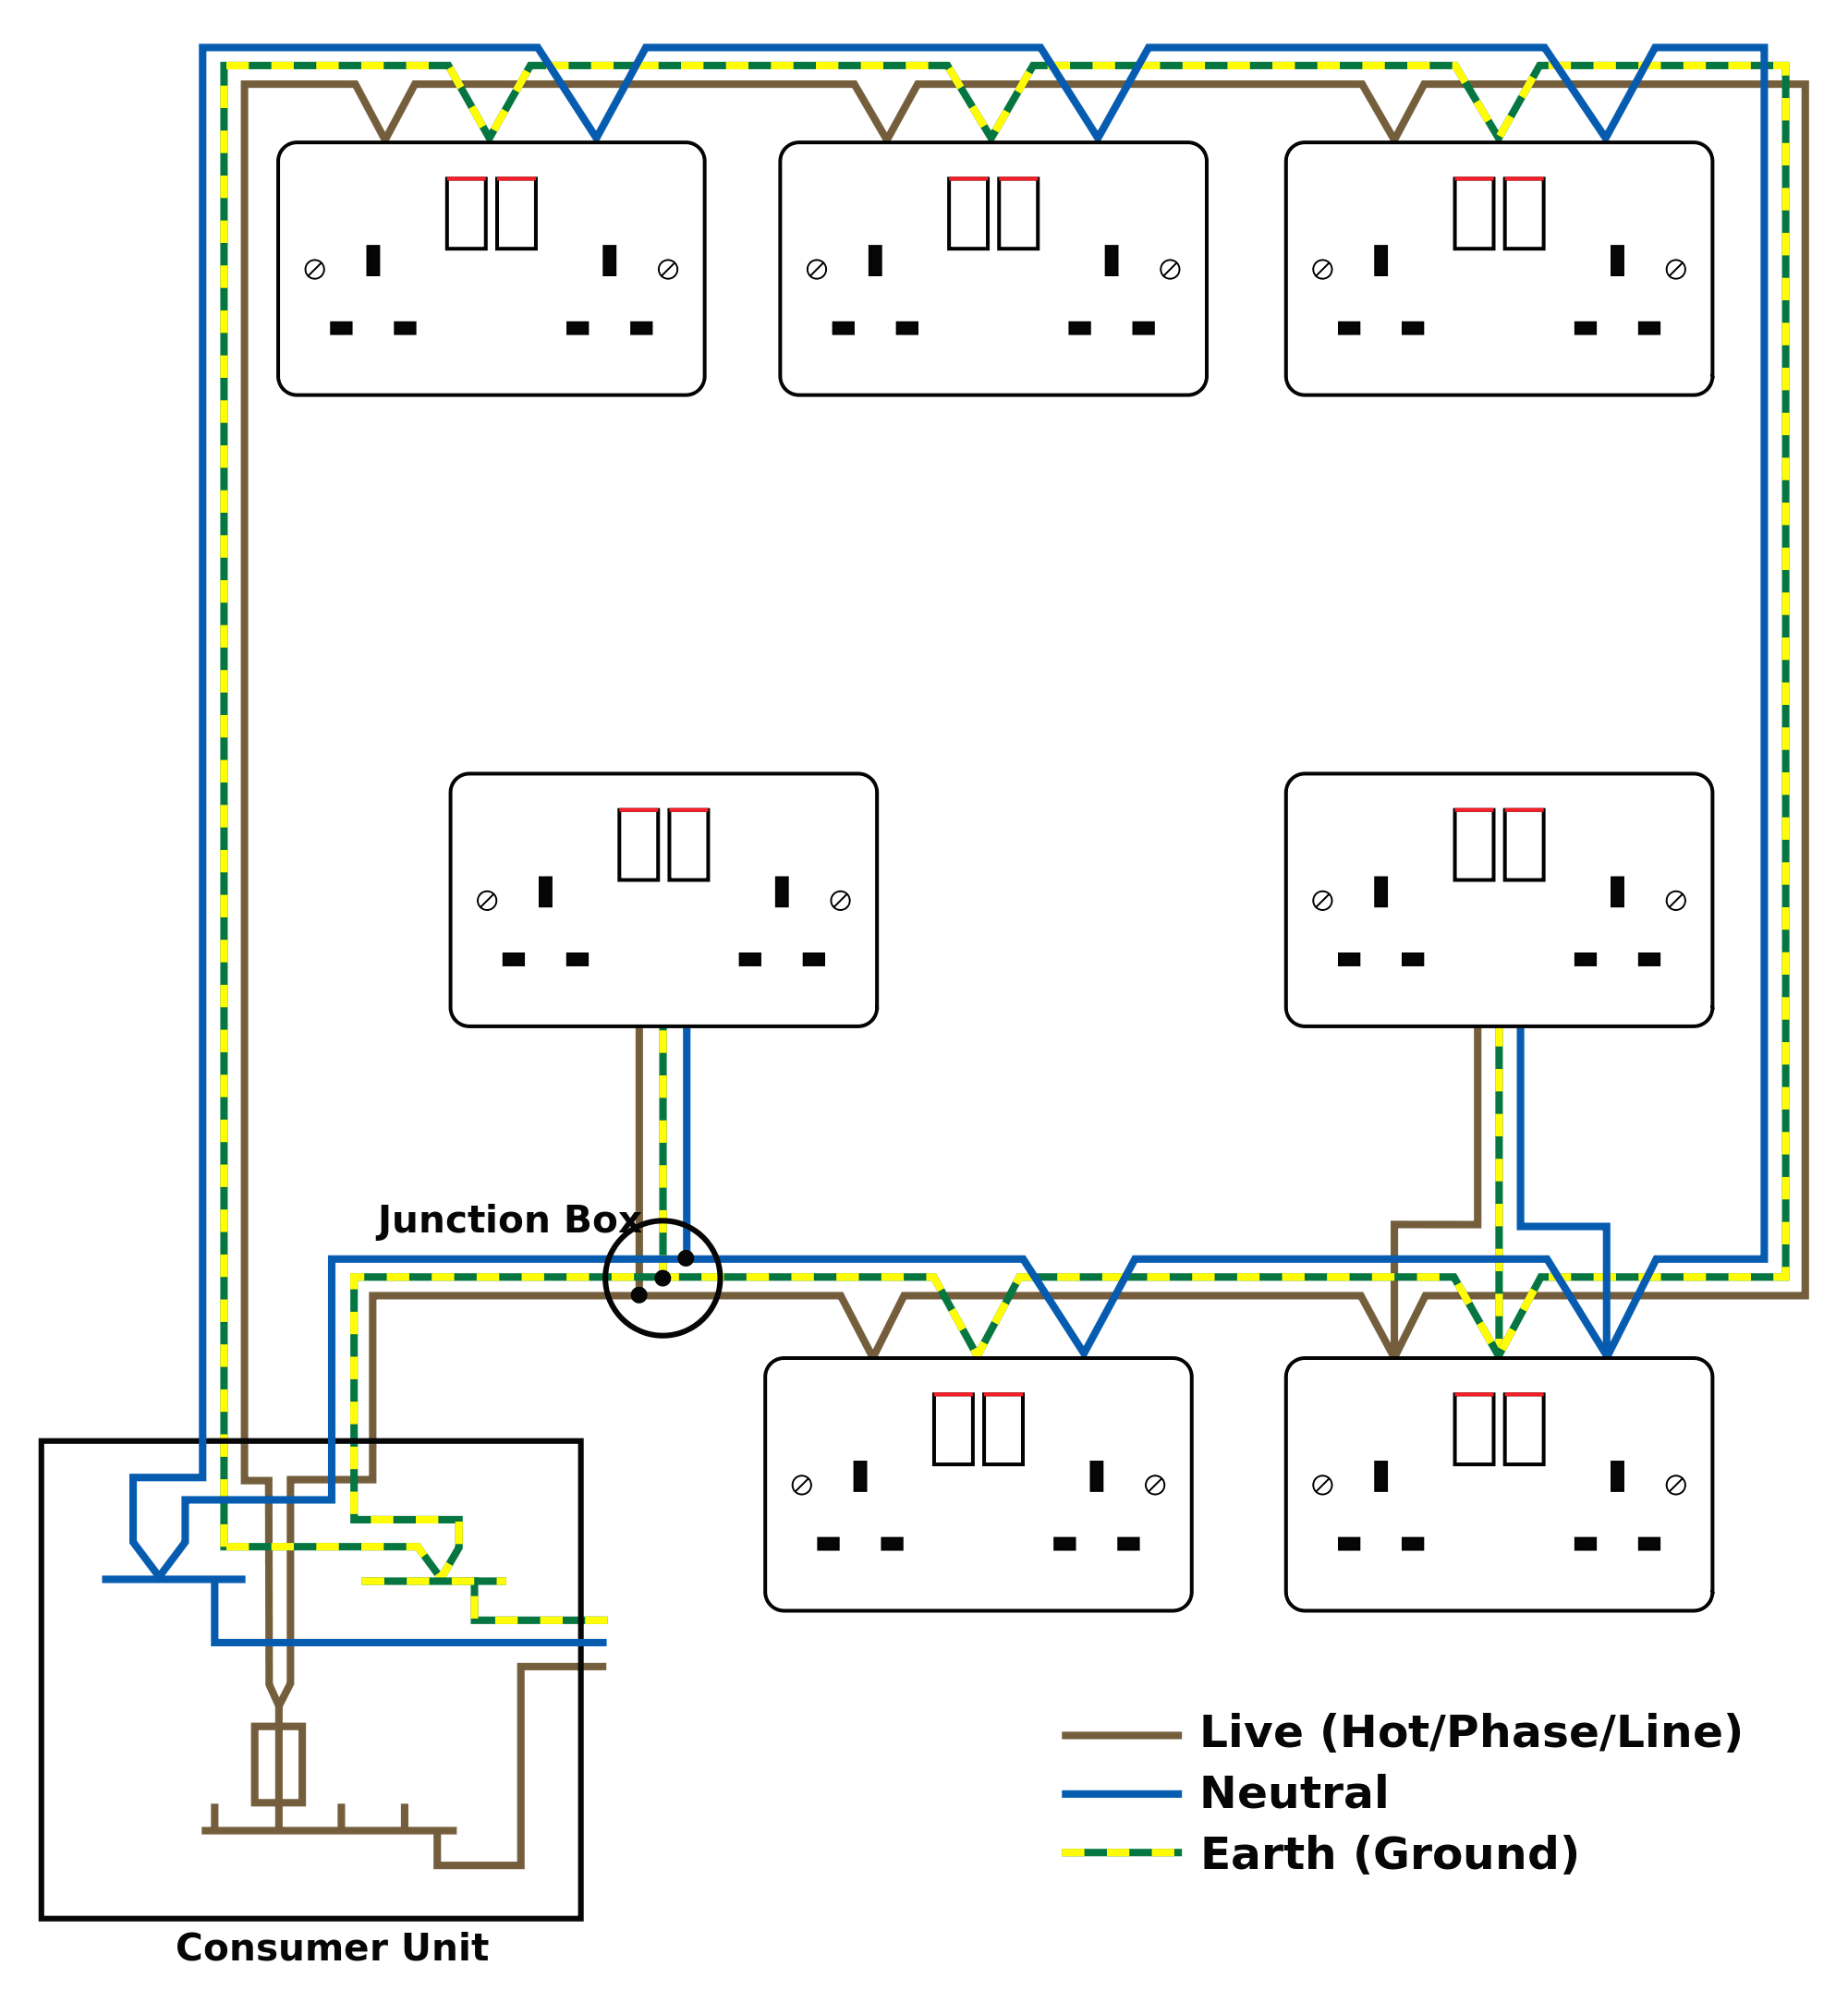 new wiring diagram for house lighting circuit pdf diagram diagramsample diagramtemplate wiringdiagram [ 2000 x 2154 Pixel ]